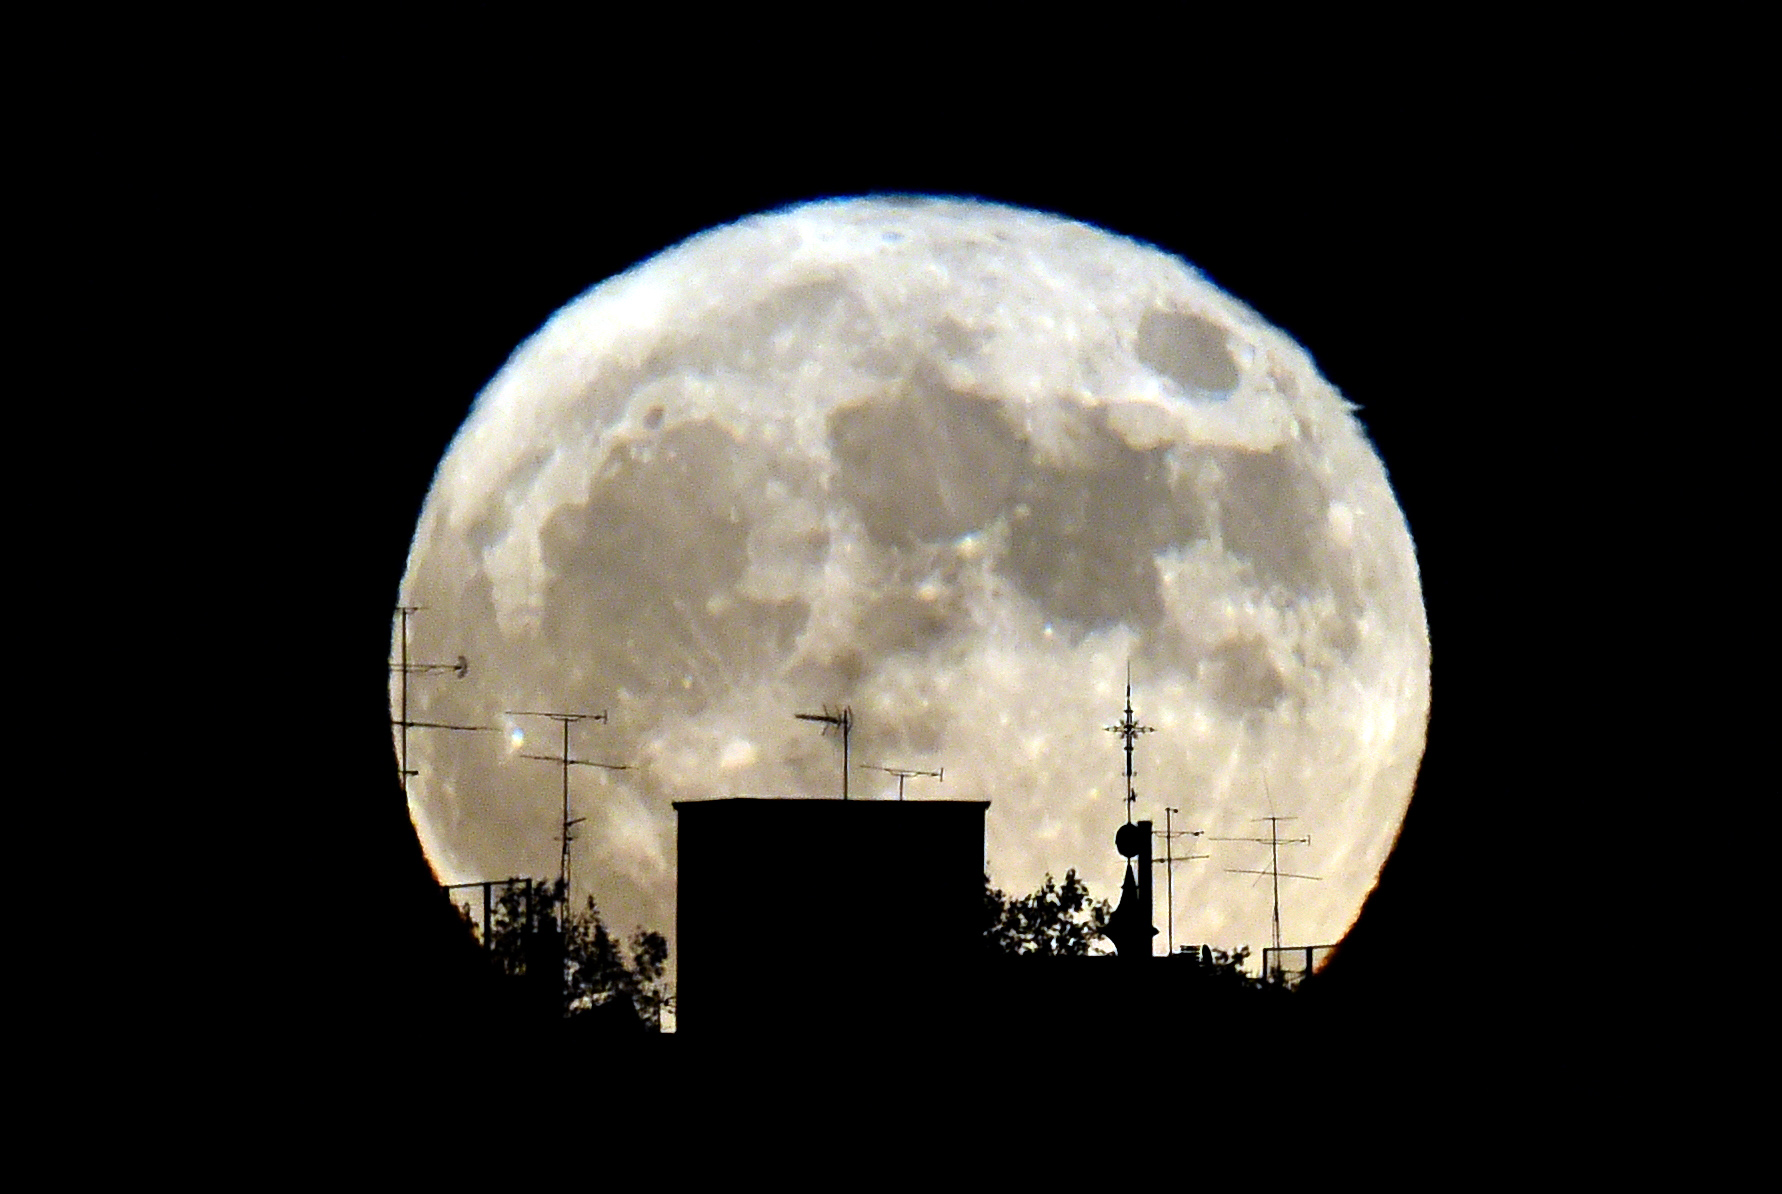 How Often Does a Supermoon Occur? The Next Great One Will Be a While